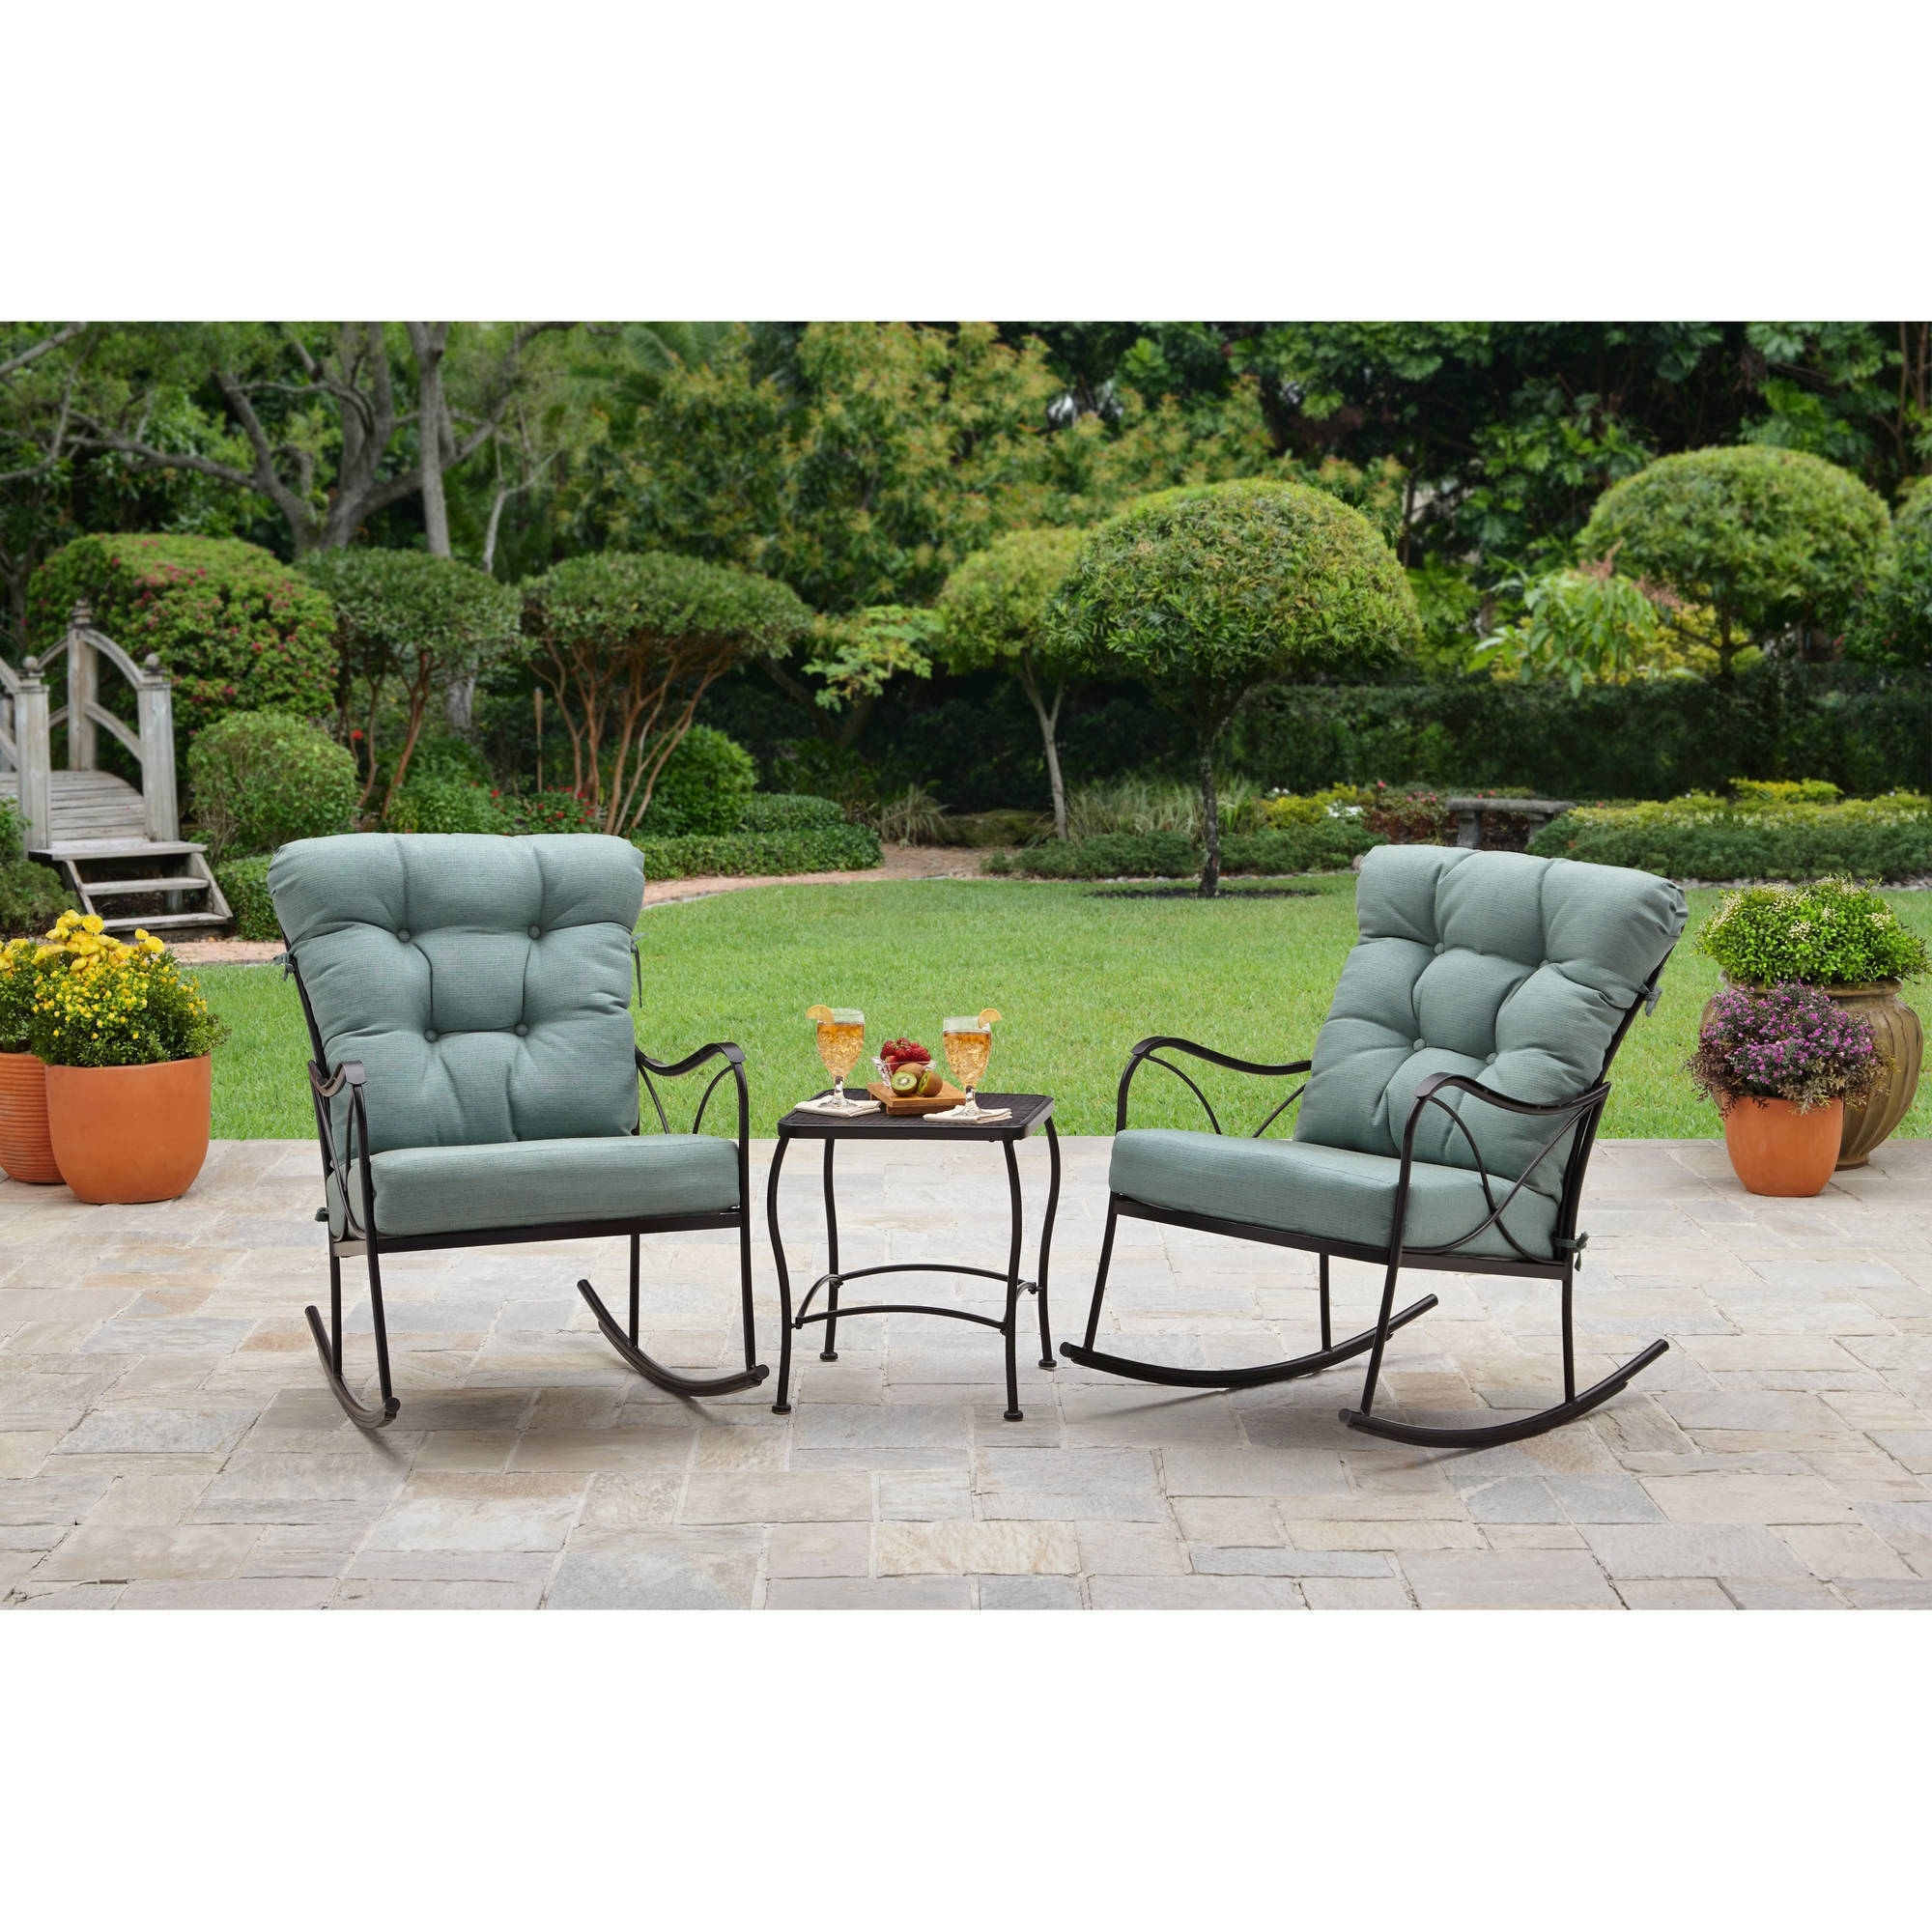 Used Patio Rocking Chairs With Famous Better Homes And Gardens Seacliff 3 Piece Rocking Chair Bistro Set (View 12 of 15)